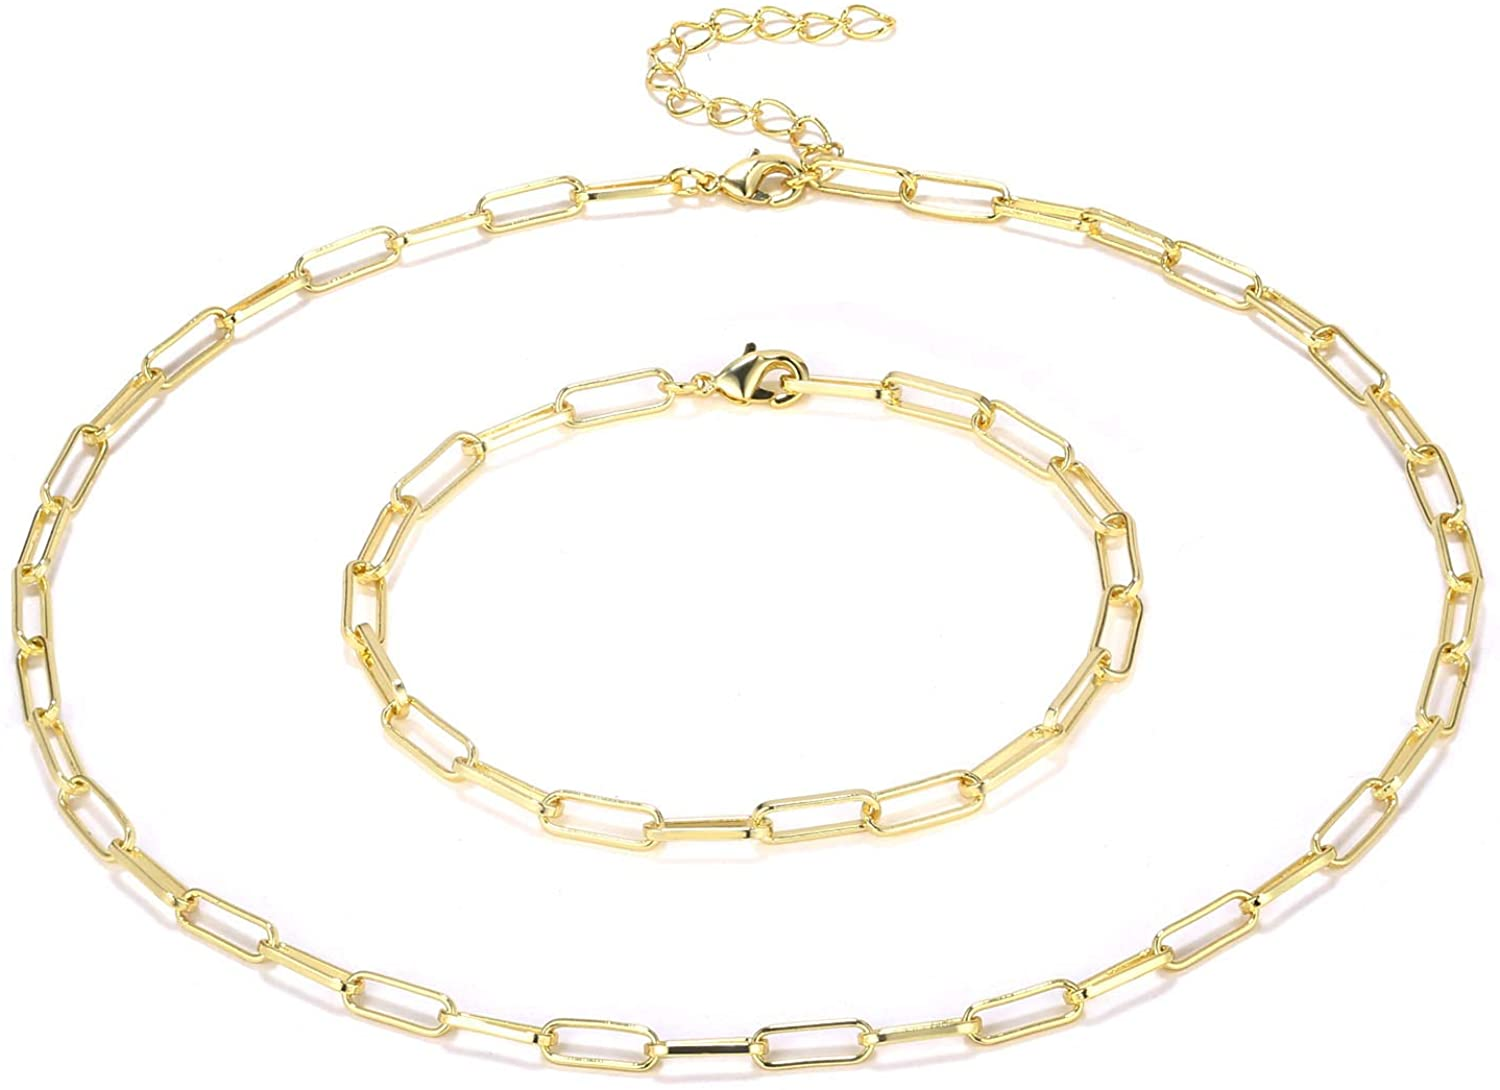 Women Chain Necklace and Bracelet Jewelry Set, 14K Gold Plated Paperclip Oval Link Chains Choker for Girls